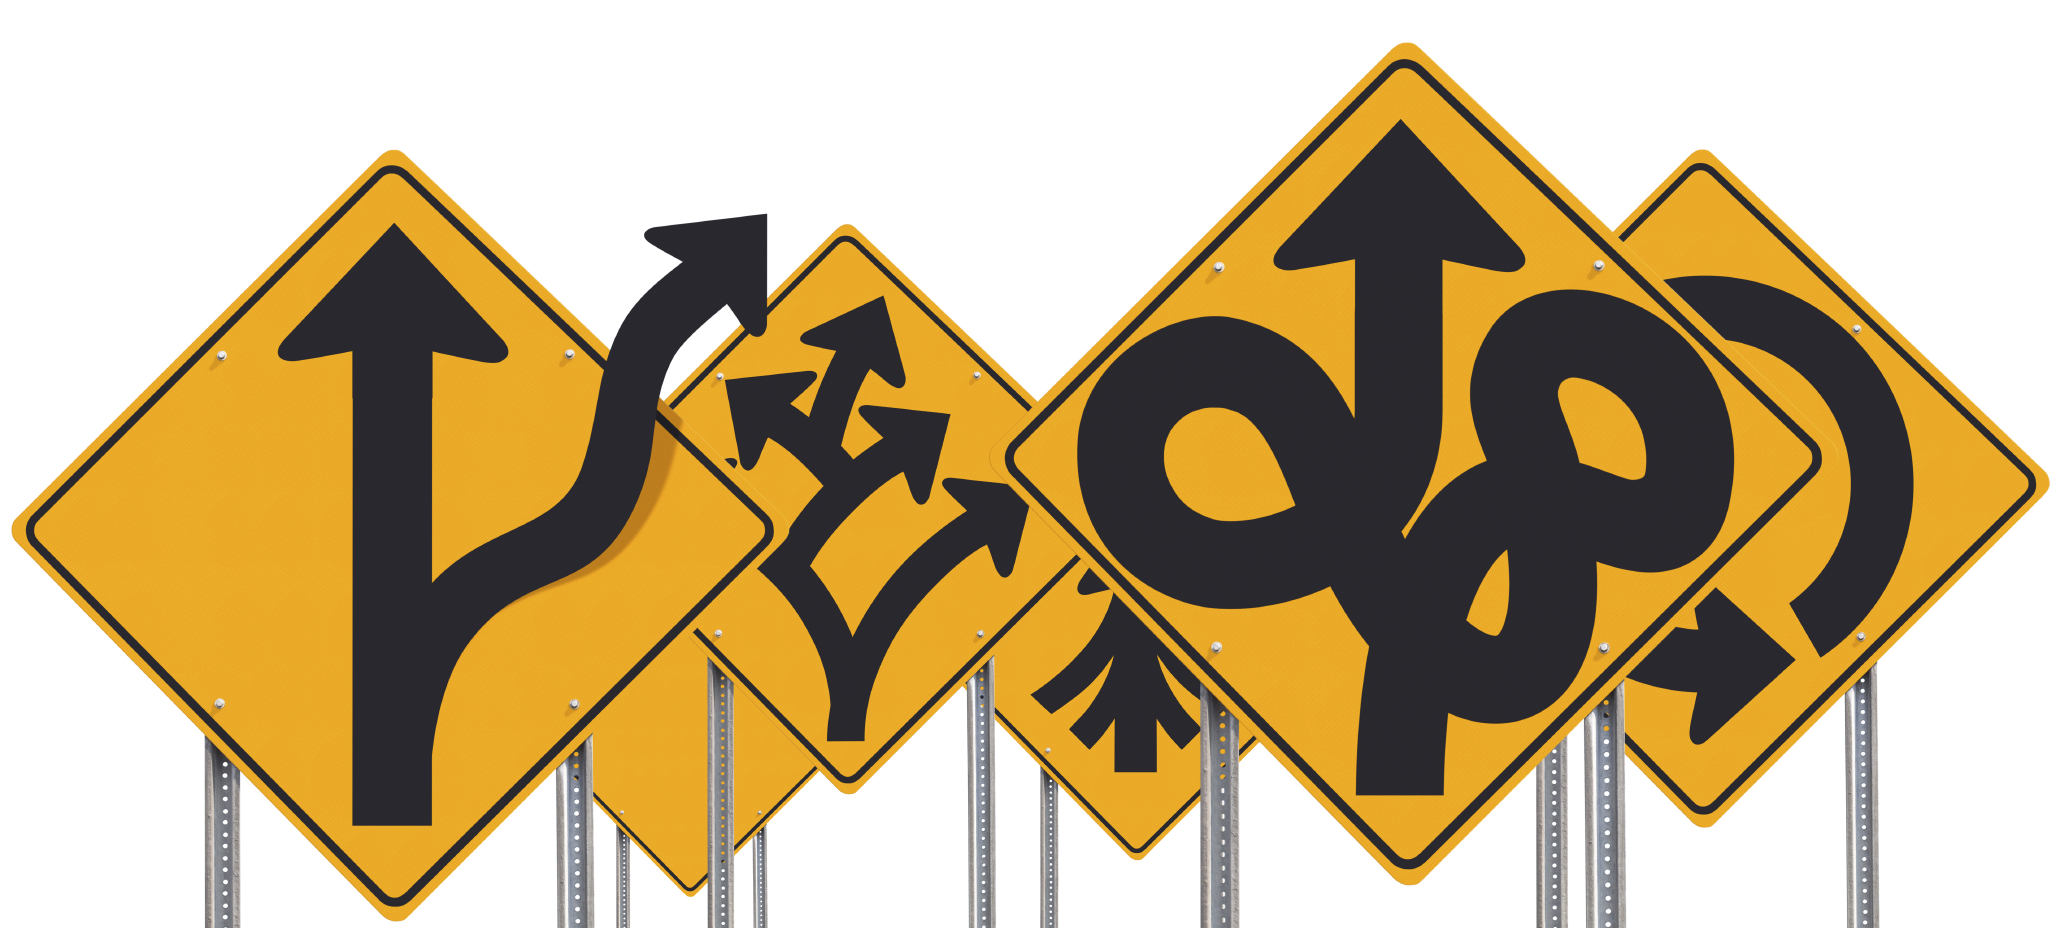 Assortment Of Bizarre Road Signs Isolated